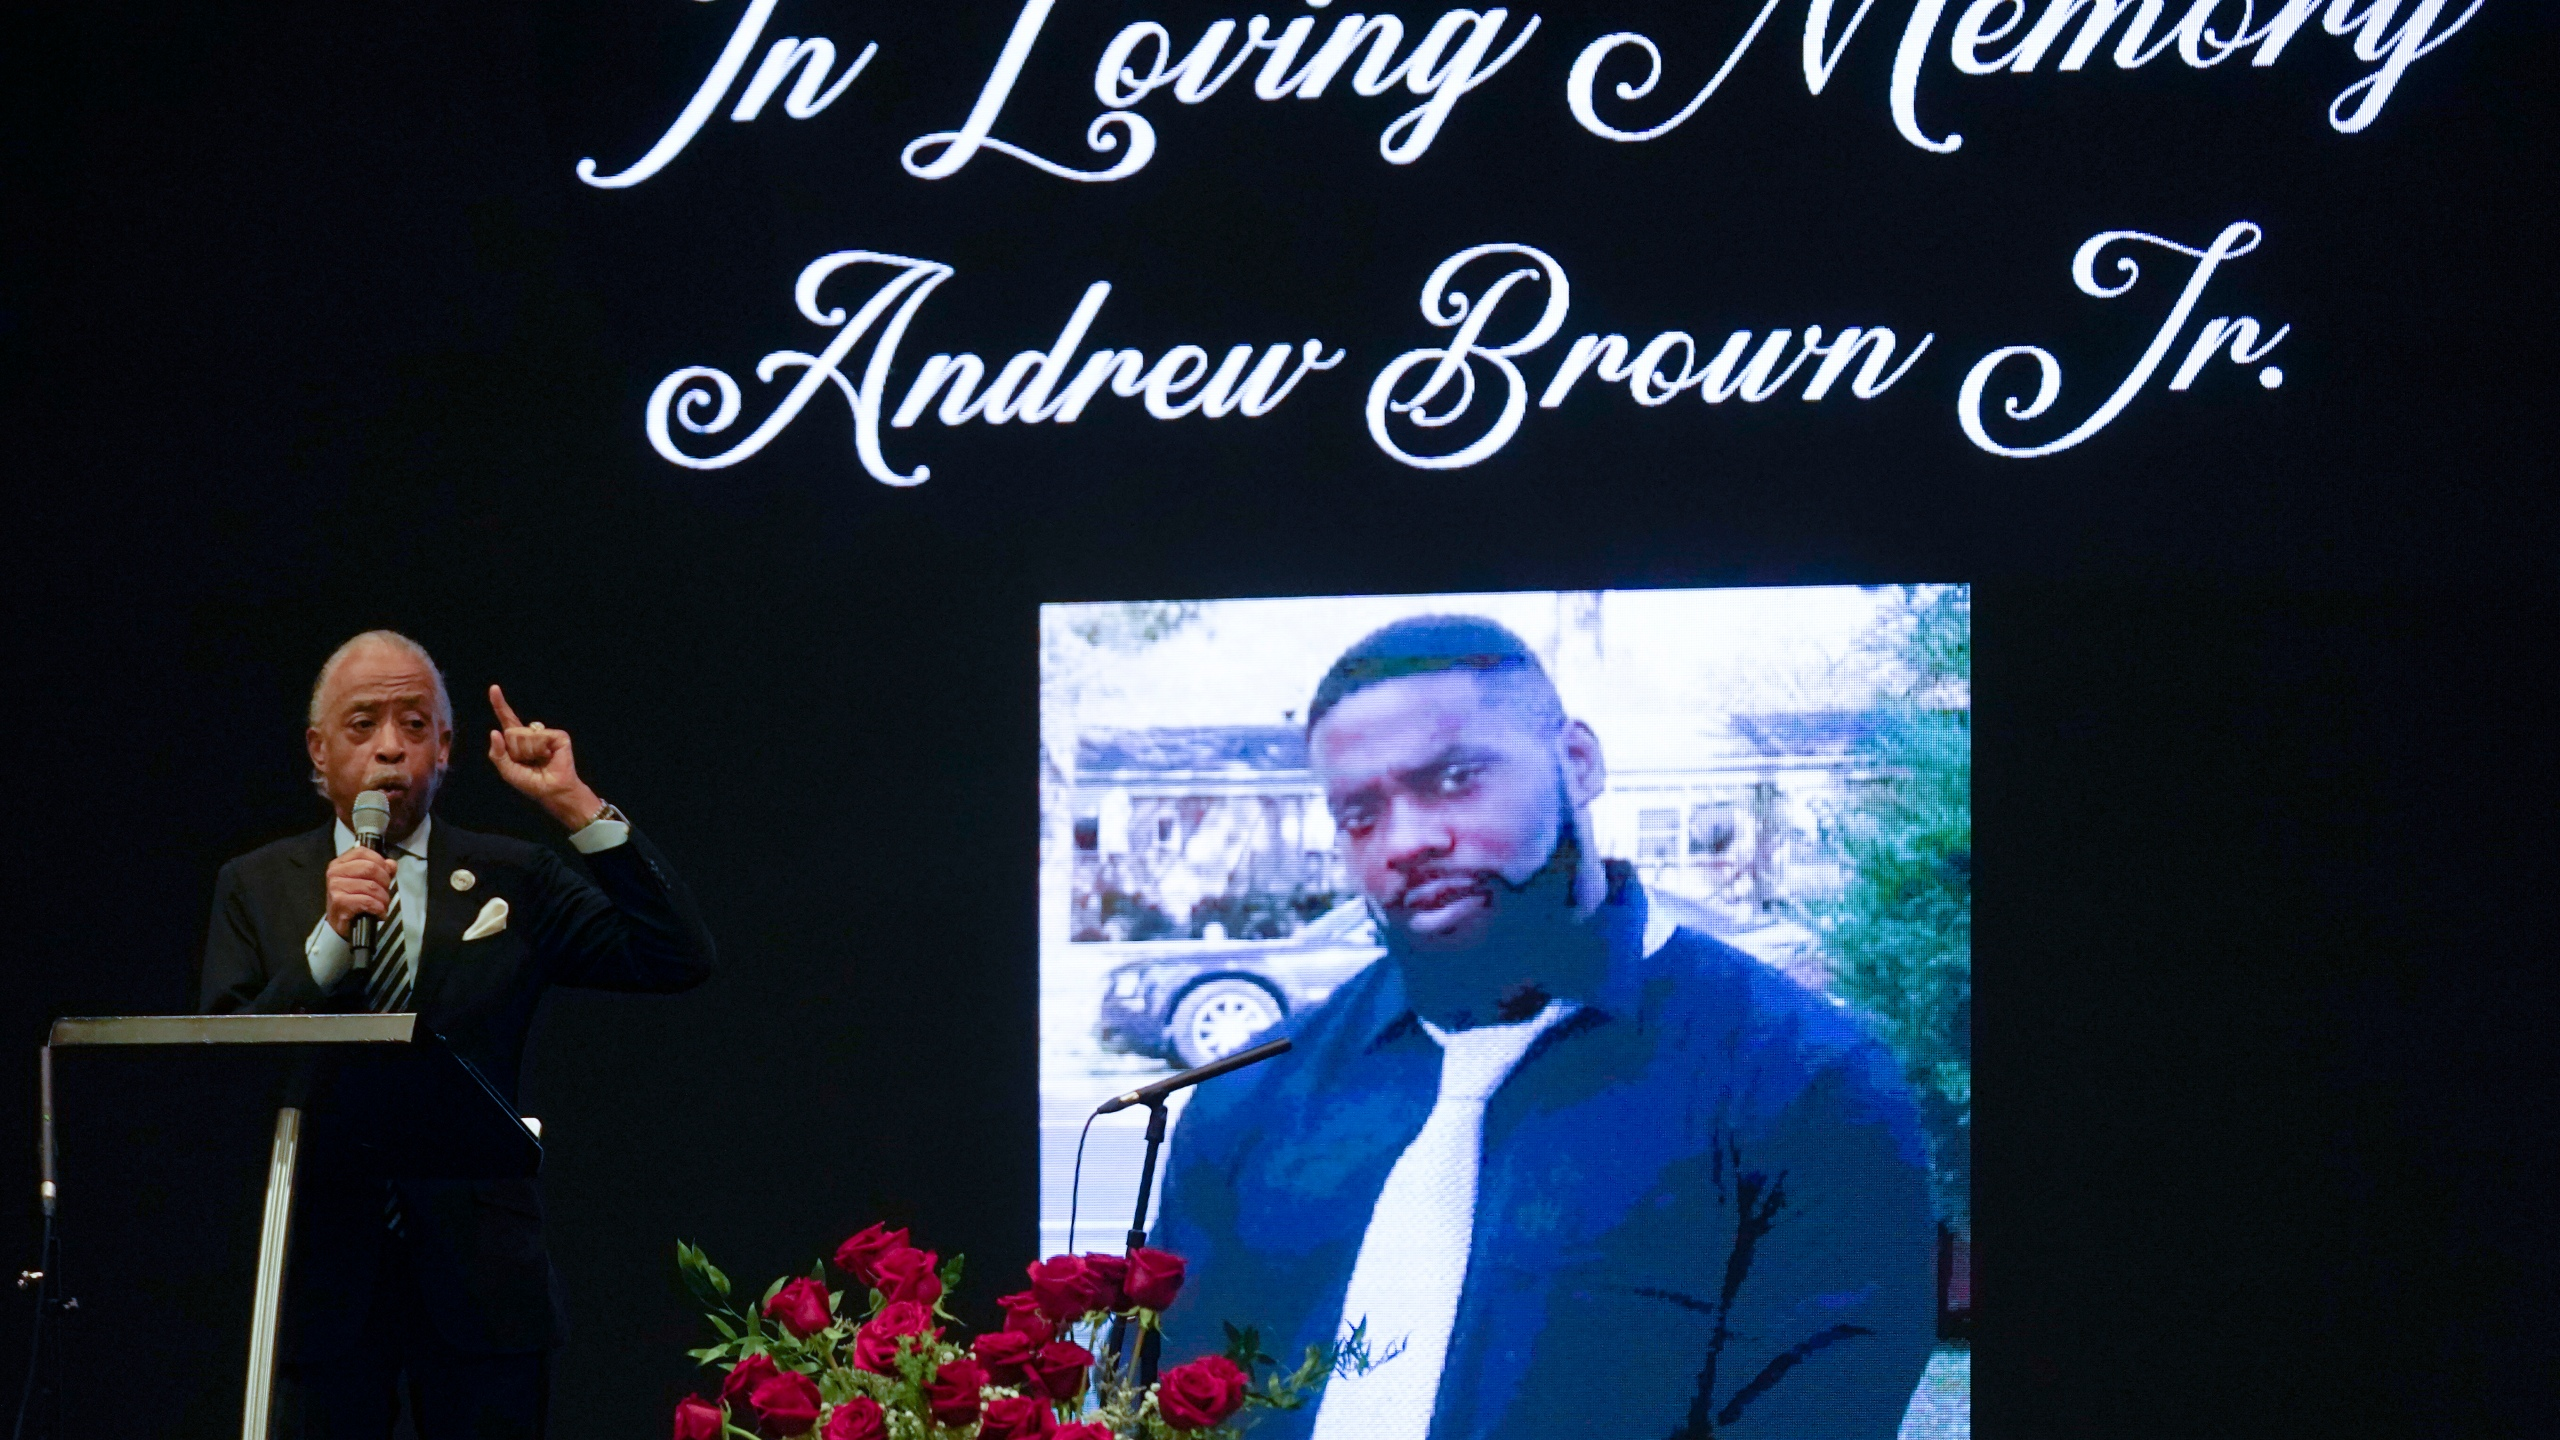 Rev. Al Sharpton speaks during the funeral for Andrew Brown Jr., Monday, May 3, 2021 at Fountain of Life Church in Elizabeth City, N.C. Brown was fatally shot by Pasquotank County Sheriff deputies trying to serve a search warrant. (AP Photo/Gerry Broome)